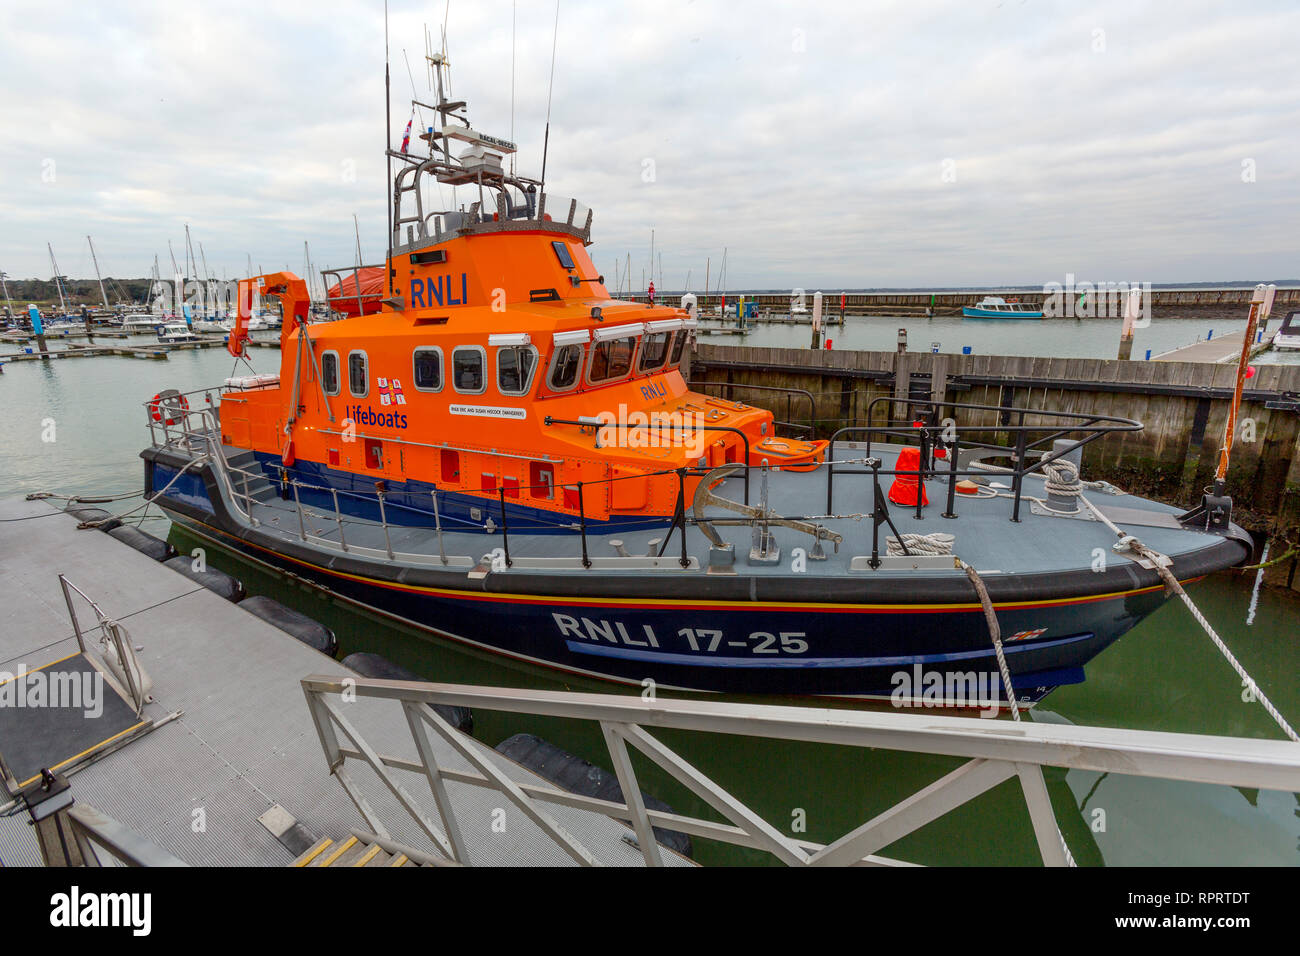 RNLI, Eric and Susan Hiscock, Wanderer, Life Boat, Yarmouth, Isle of Wight, England, UK, - Stock Image